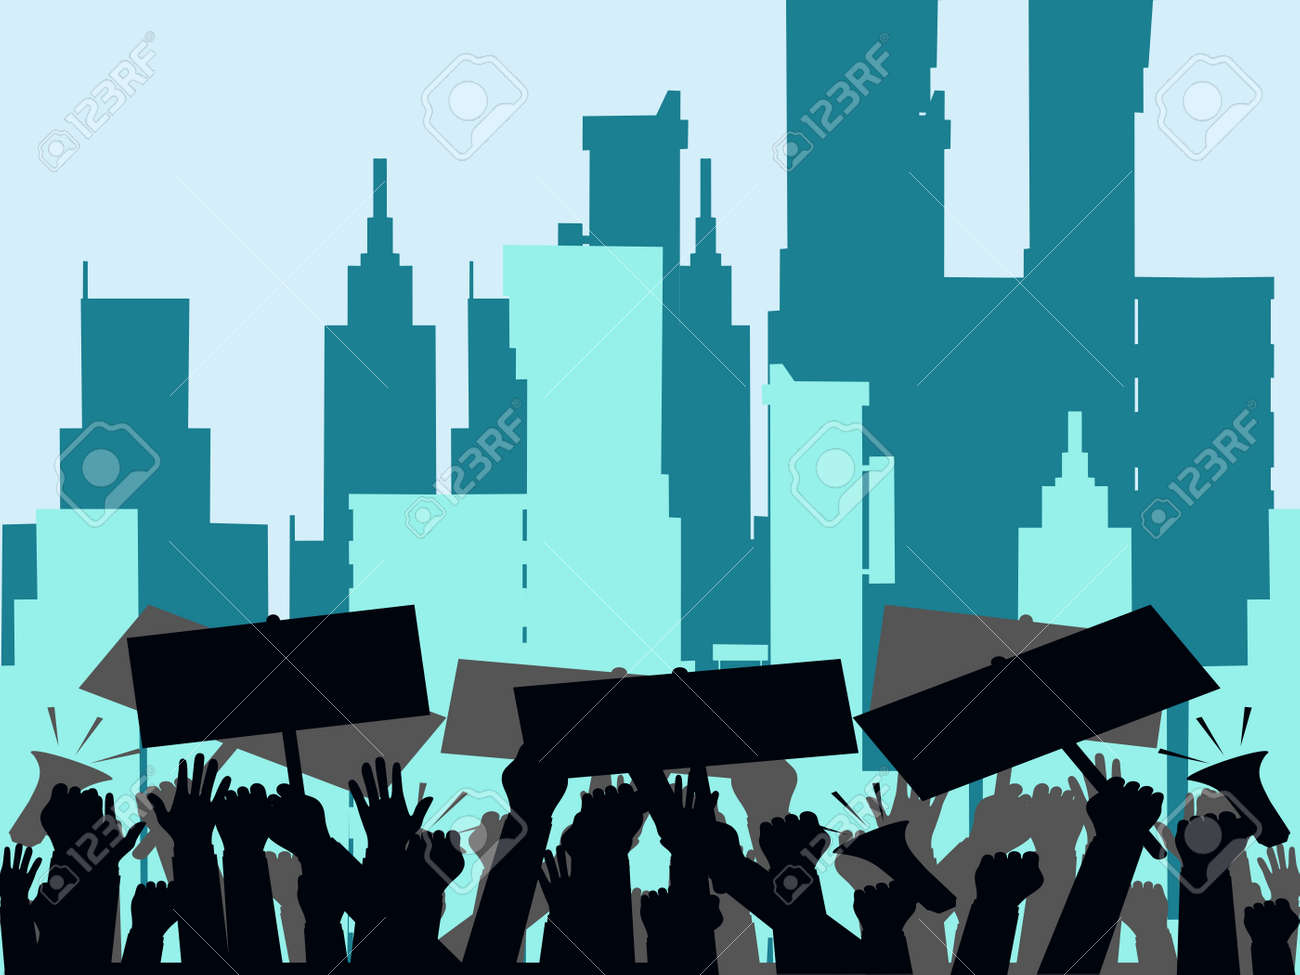 Protesters hands holding protest signs. crowd of angry people. crowd of people protesters. Vector illustration eps - 158353056